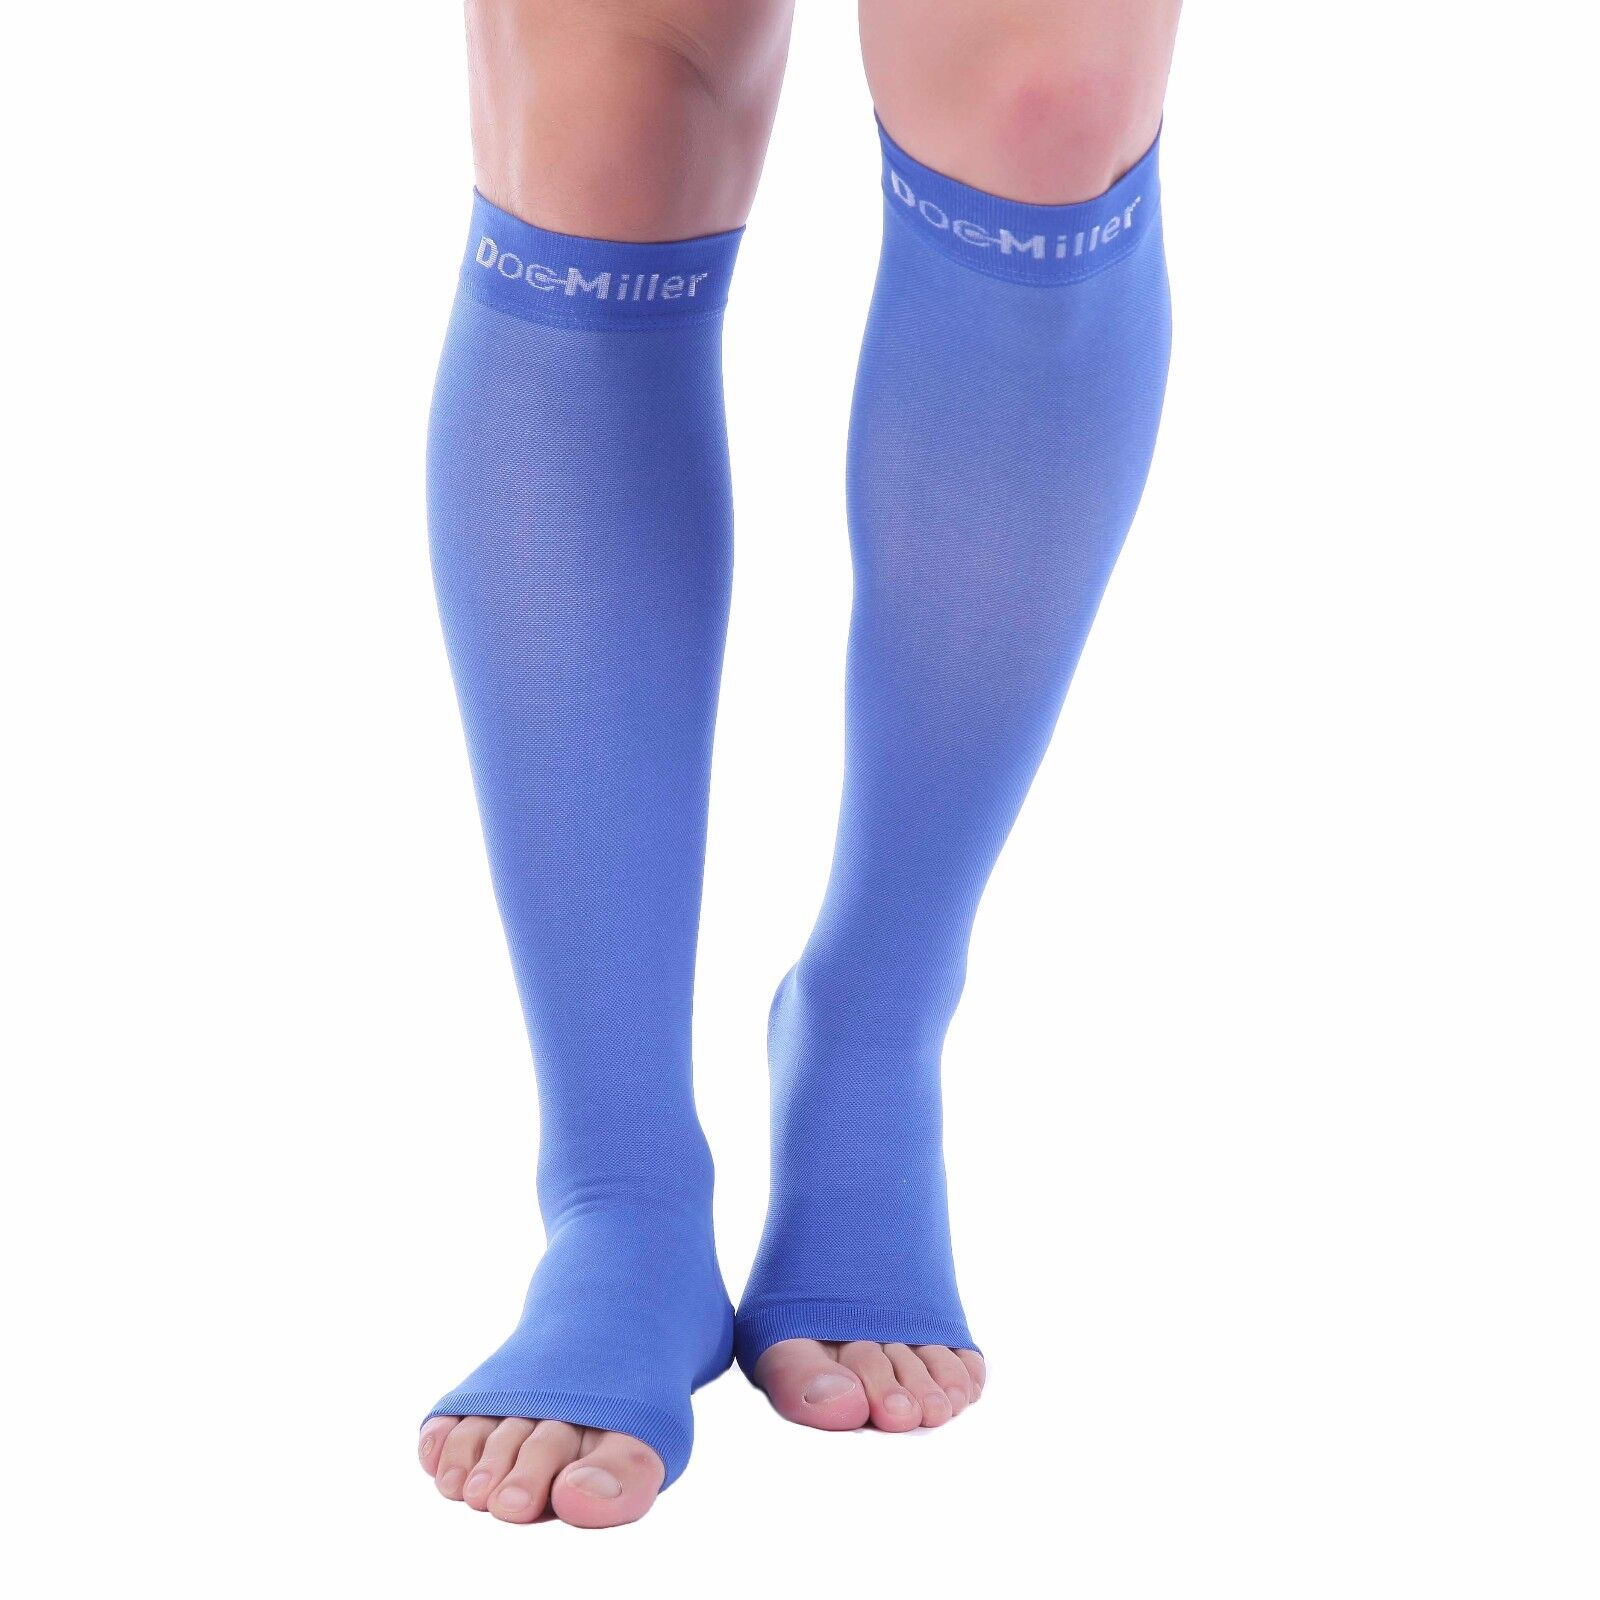 d4e6267d99 Details about Doc Miller Open Toe Compression Socks 20-30 mmHg Recovery  Varicose Veins BLUE